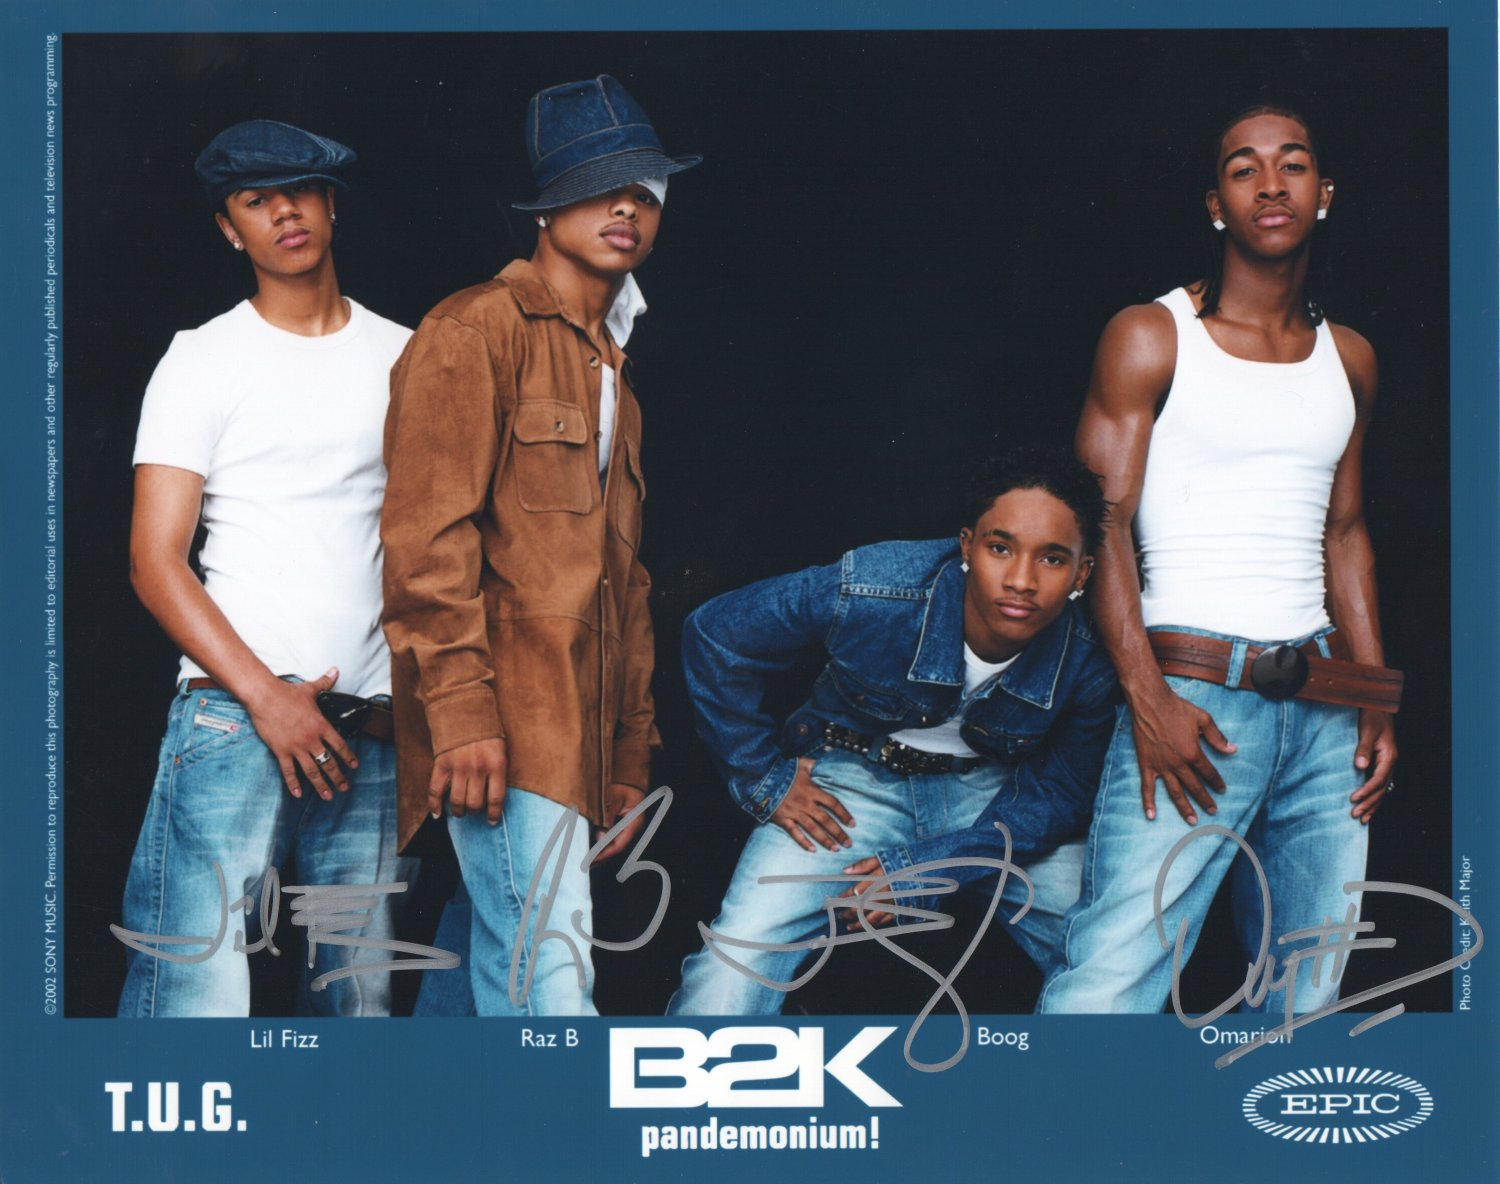 B2K BOYS BAND - ALL MEMBERS - HAND SIGNED AUTOGRAPHED PHOTO WITH COA